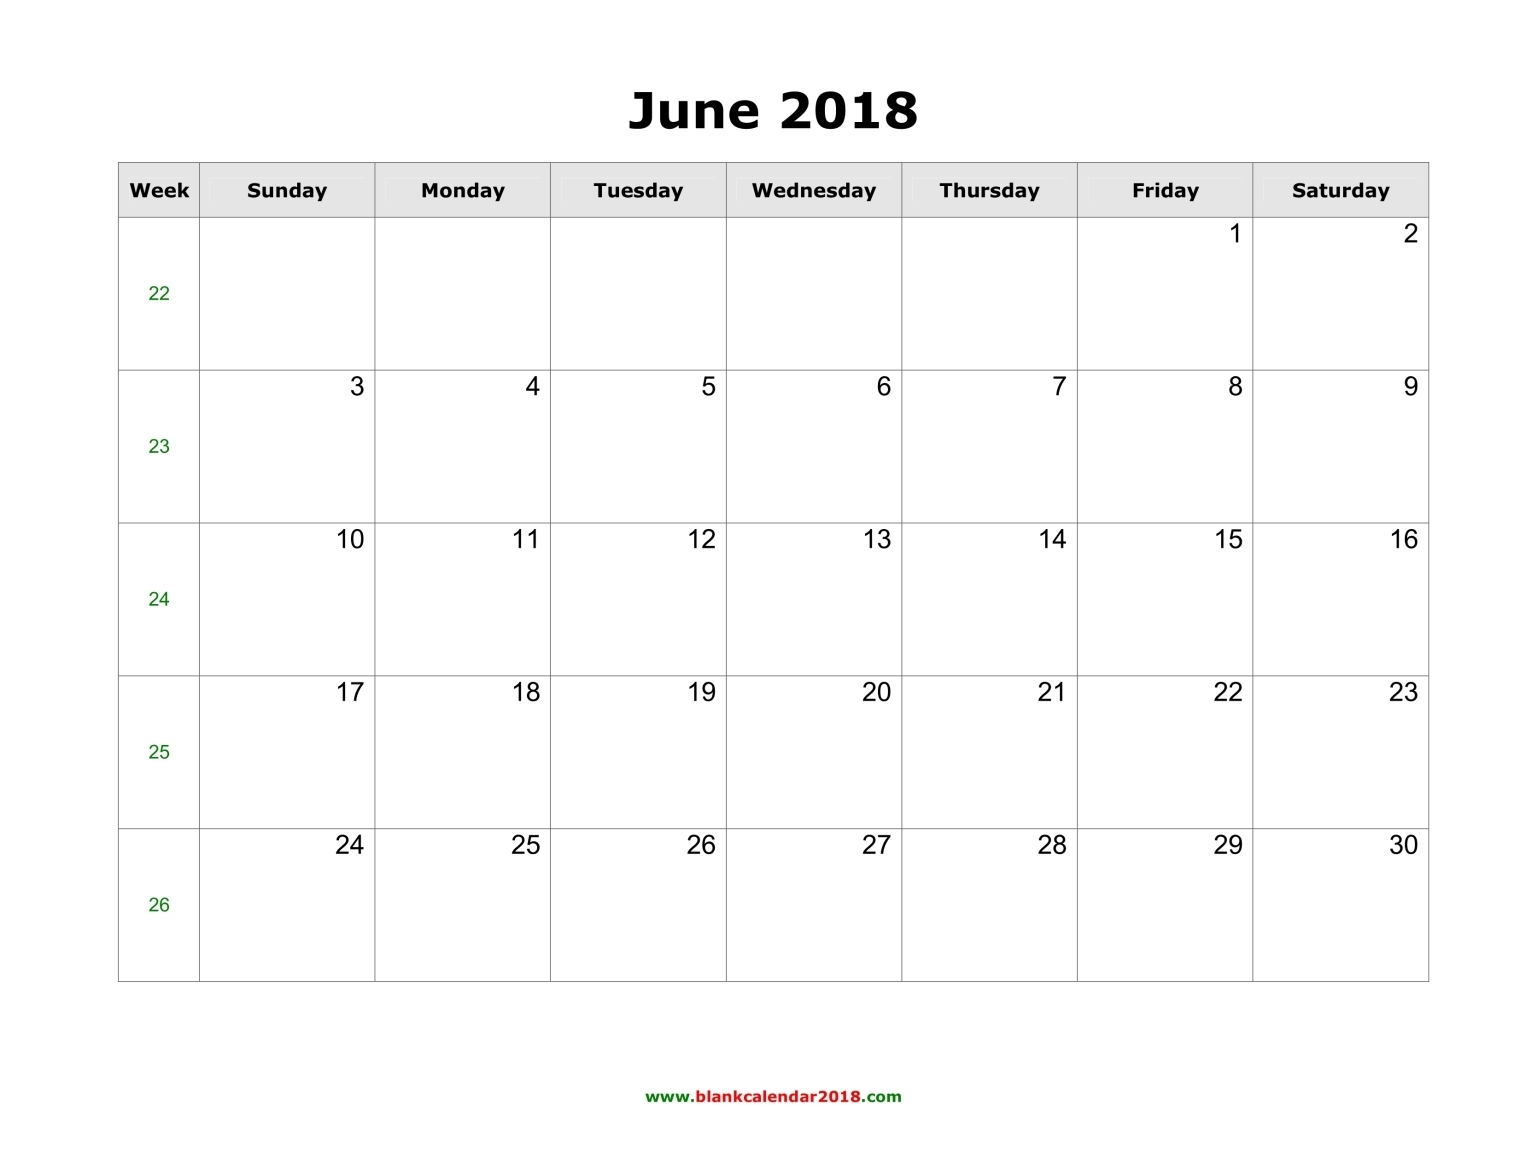 2018 June Calendar with Holidays